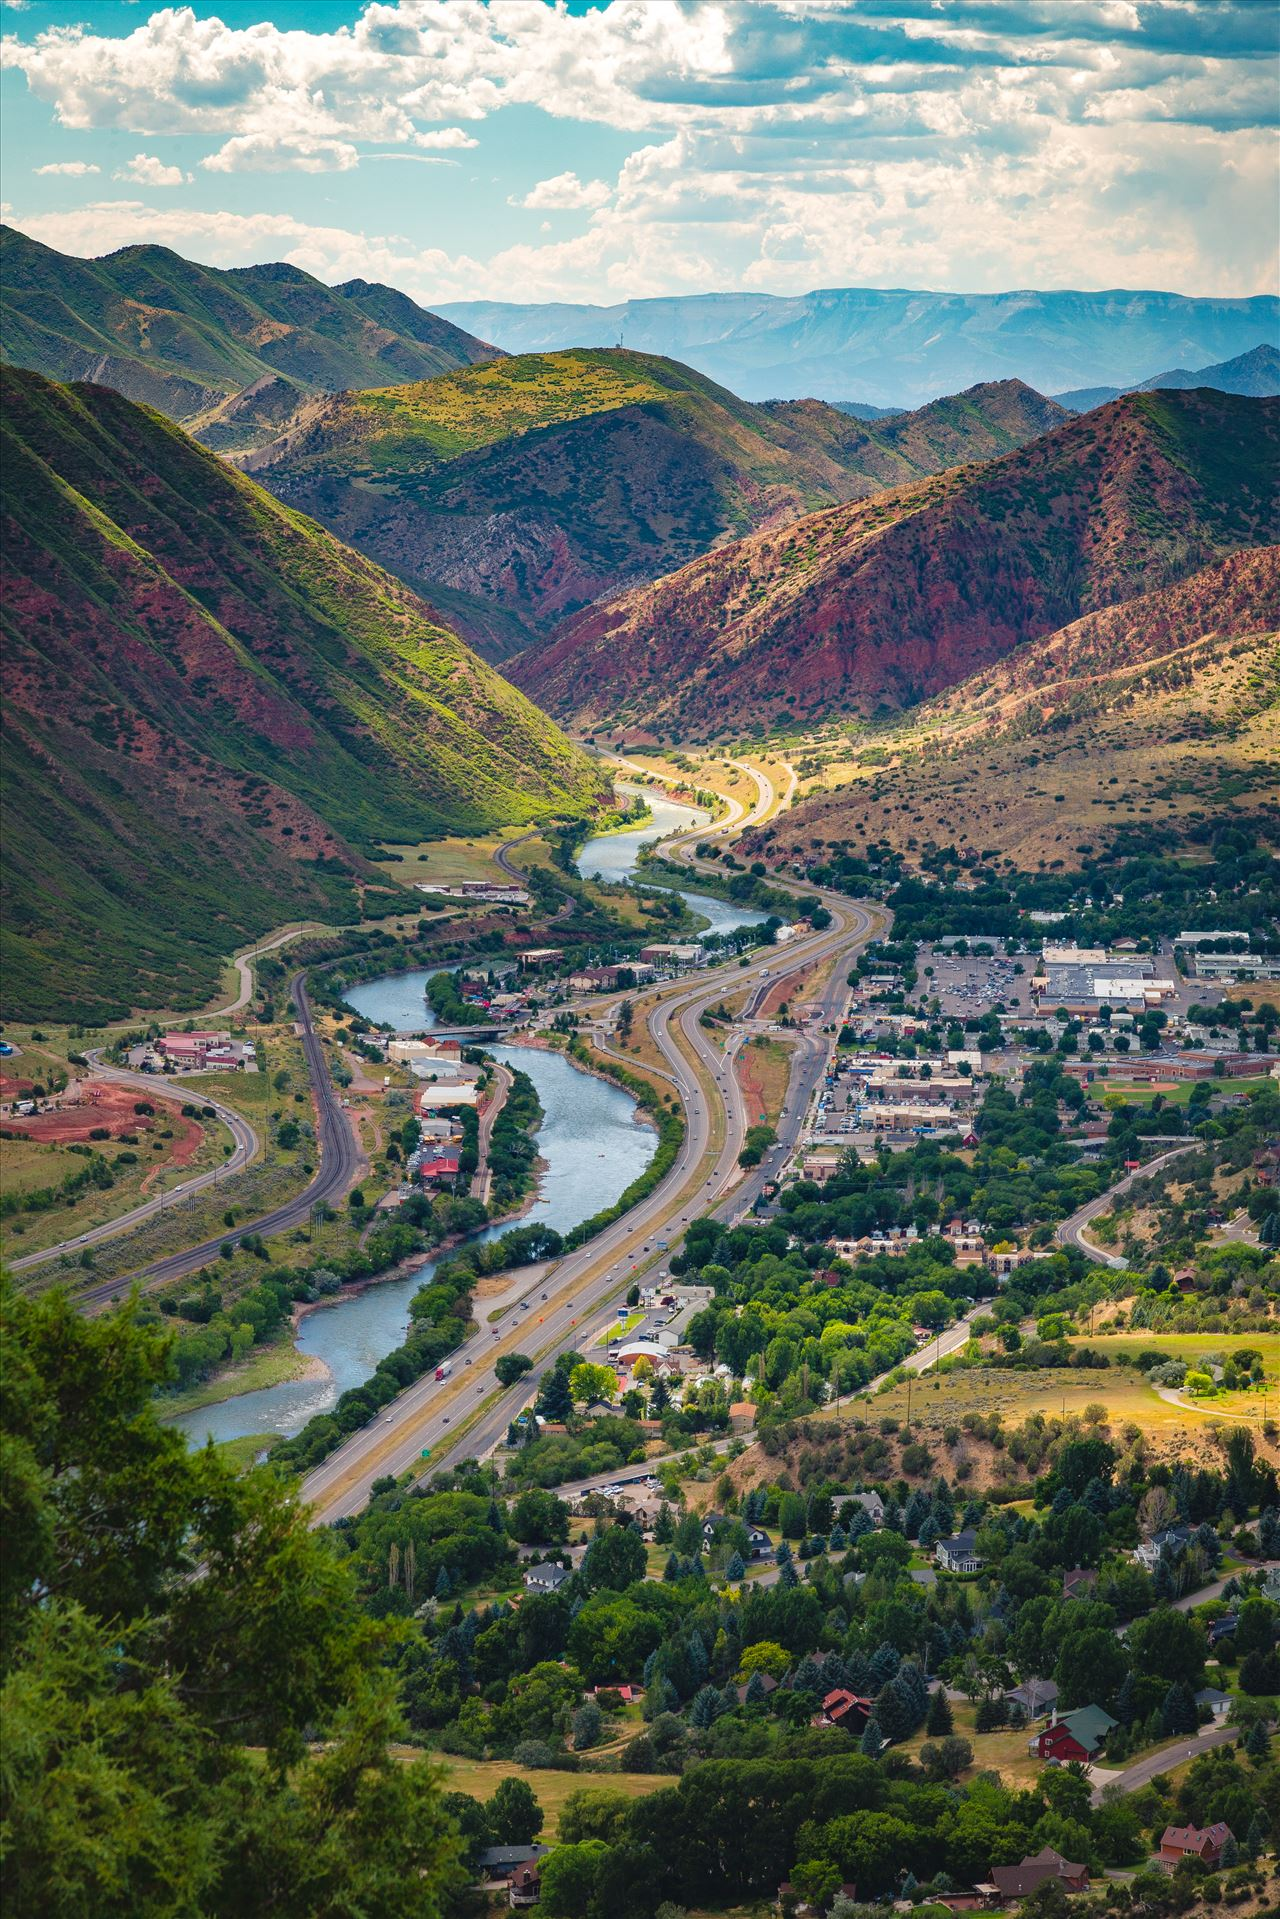 Glenwood Springs from Glenwood Caverns No 1 - Looking down from the top of Glenwood Caverns, the city of Glenwood Springs, Colorado looks miniature. by Scott Smith Photos